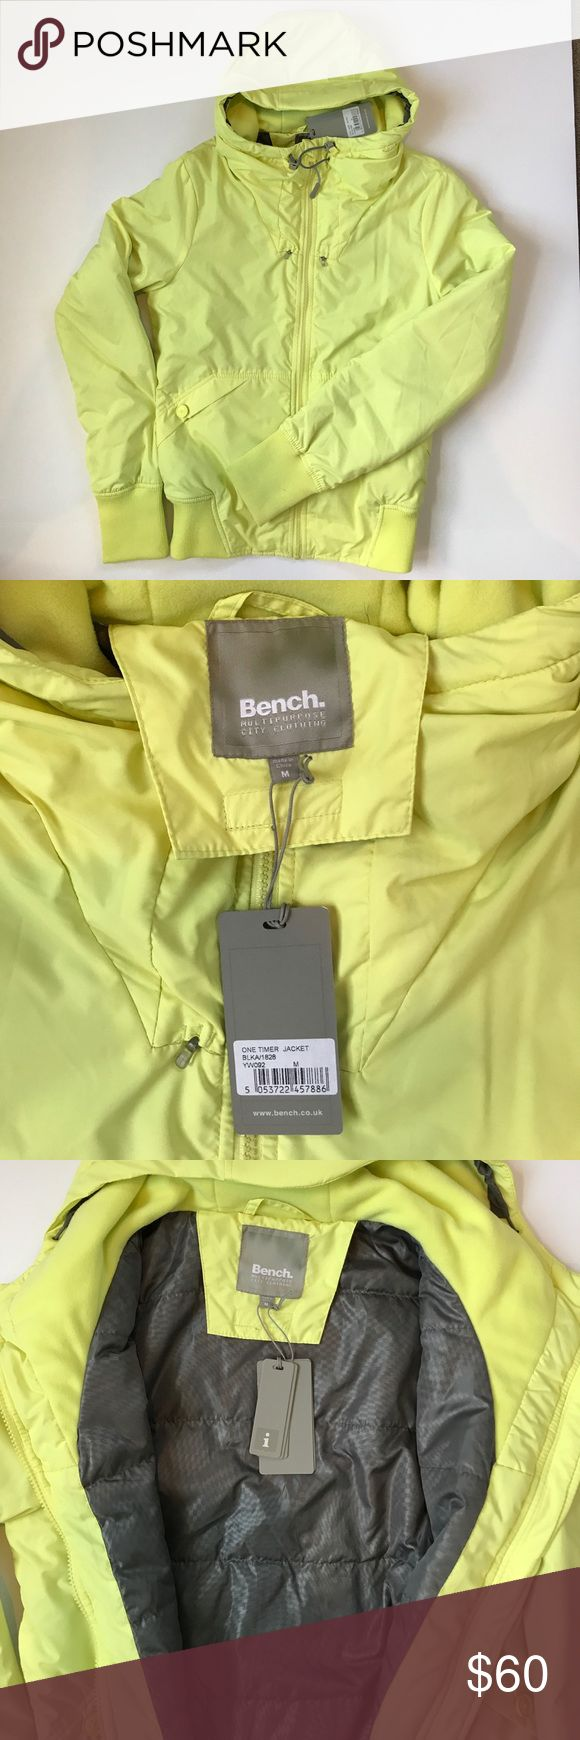 NWT Bench One Timer Jacket NWT Bench jacket. Packs into hood. Reflective elements for enhanced visibility in low light. Durable water repellent finish PFOA free. Lasts up to 10 washes. Never worn. Smoke and pet free home. Bench Jackets & Coats